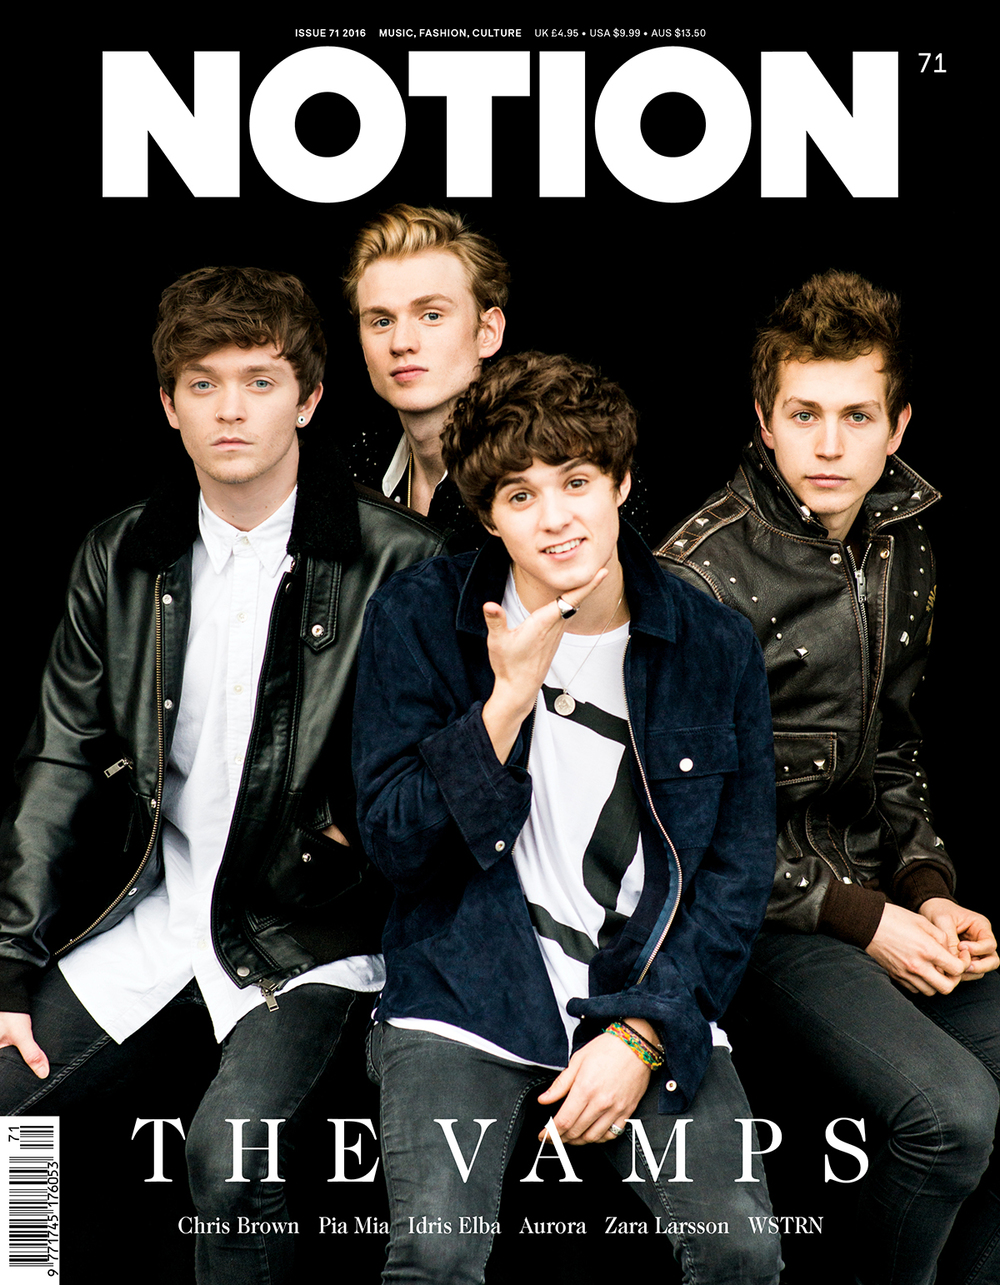 NOTIONCOVERJANUARY2015[1].jpg